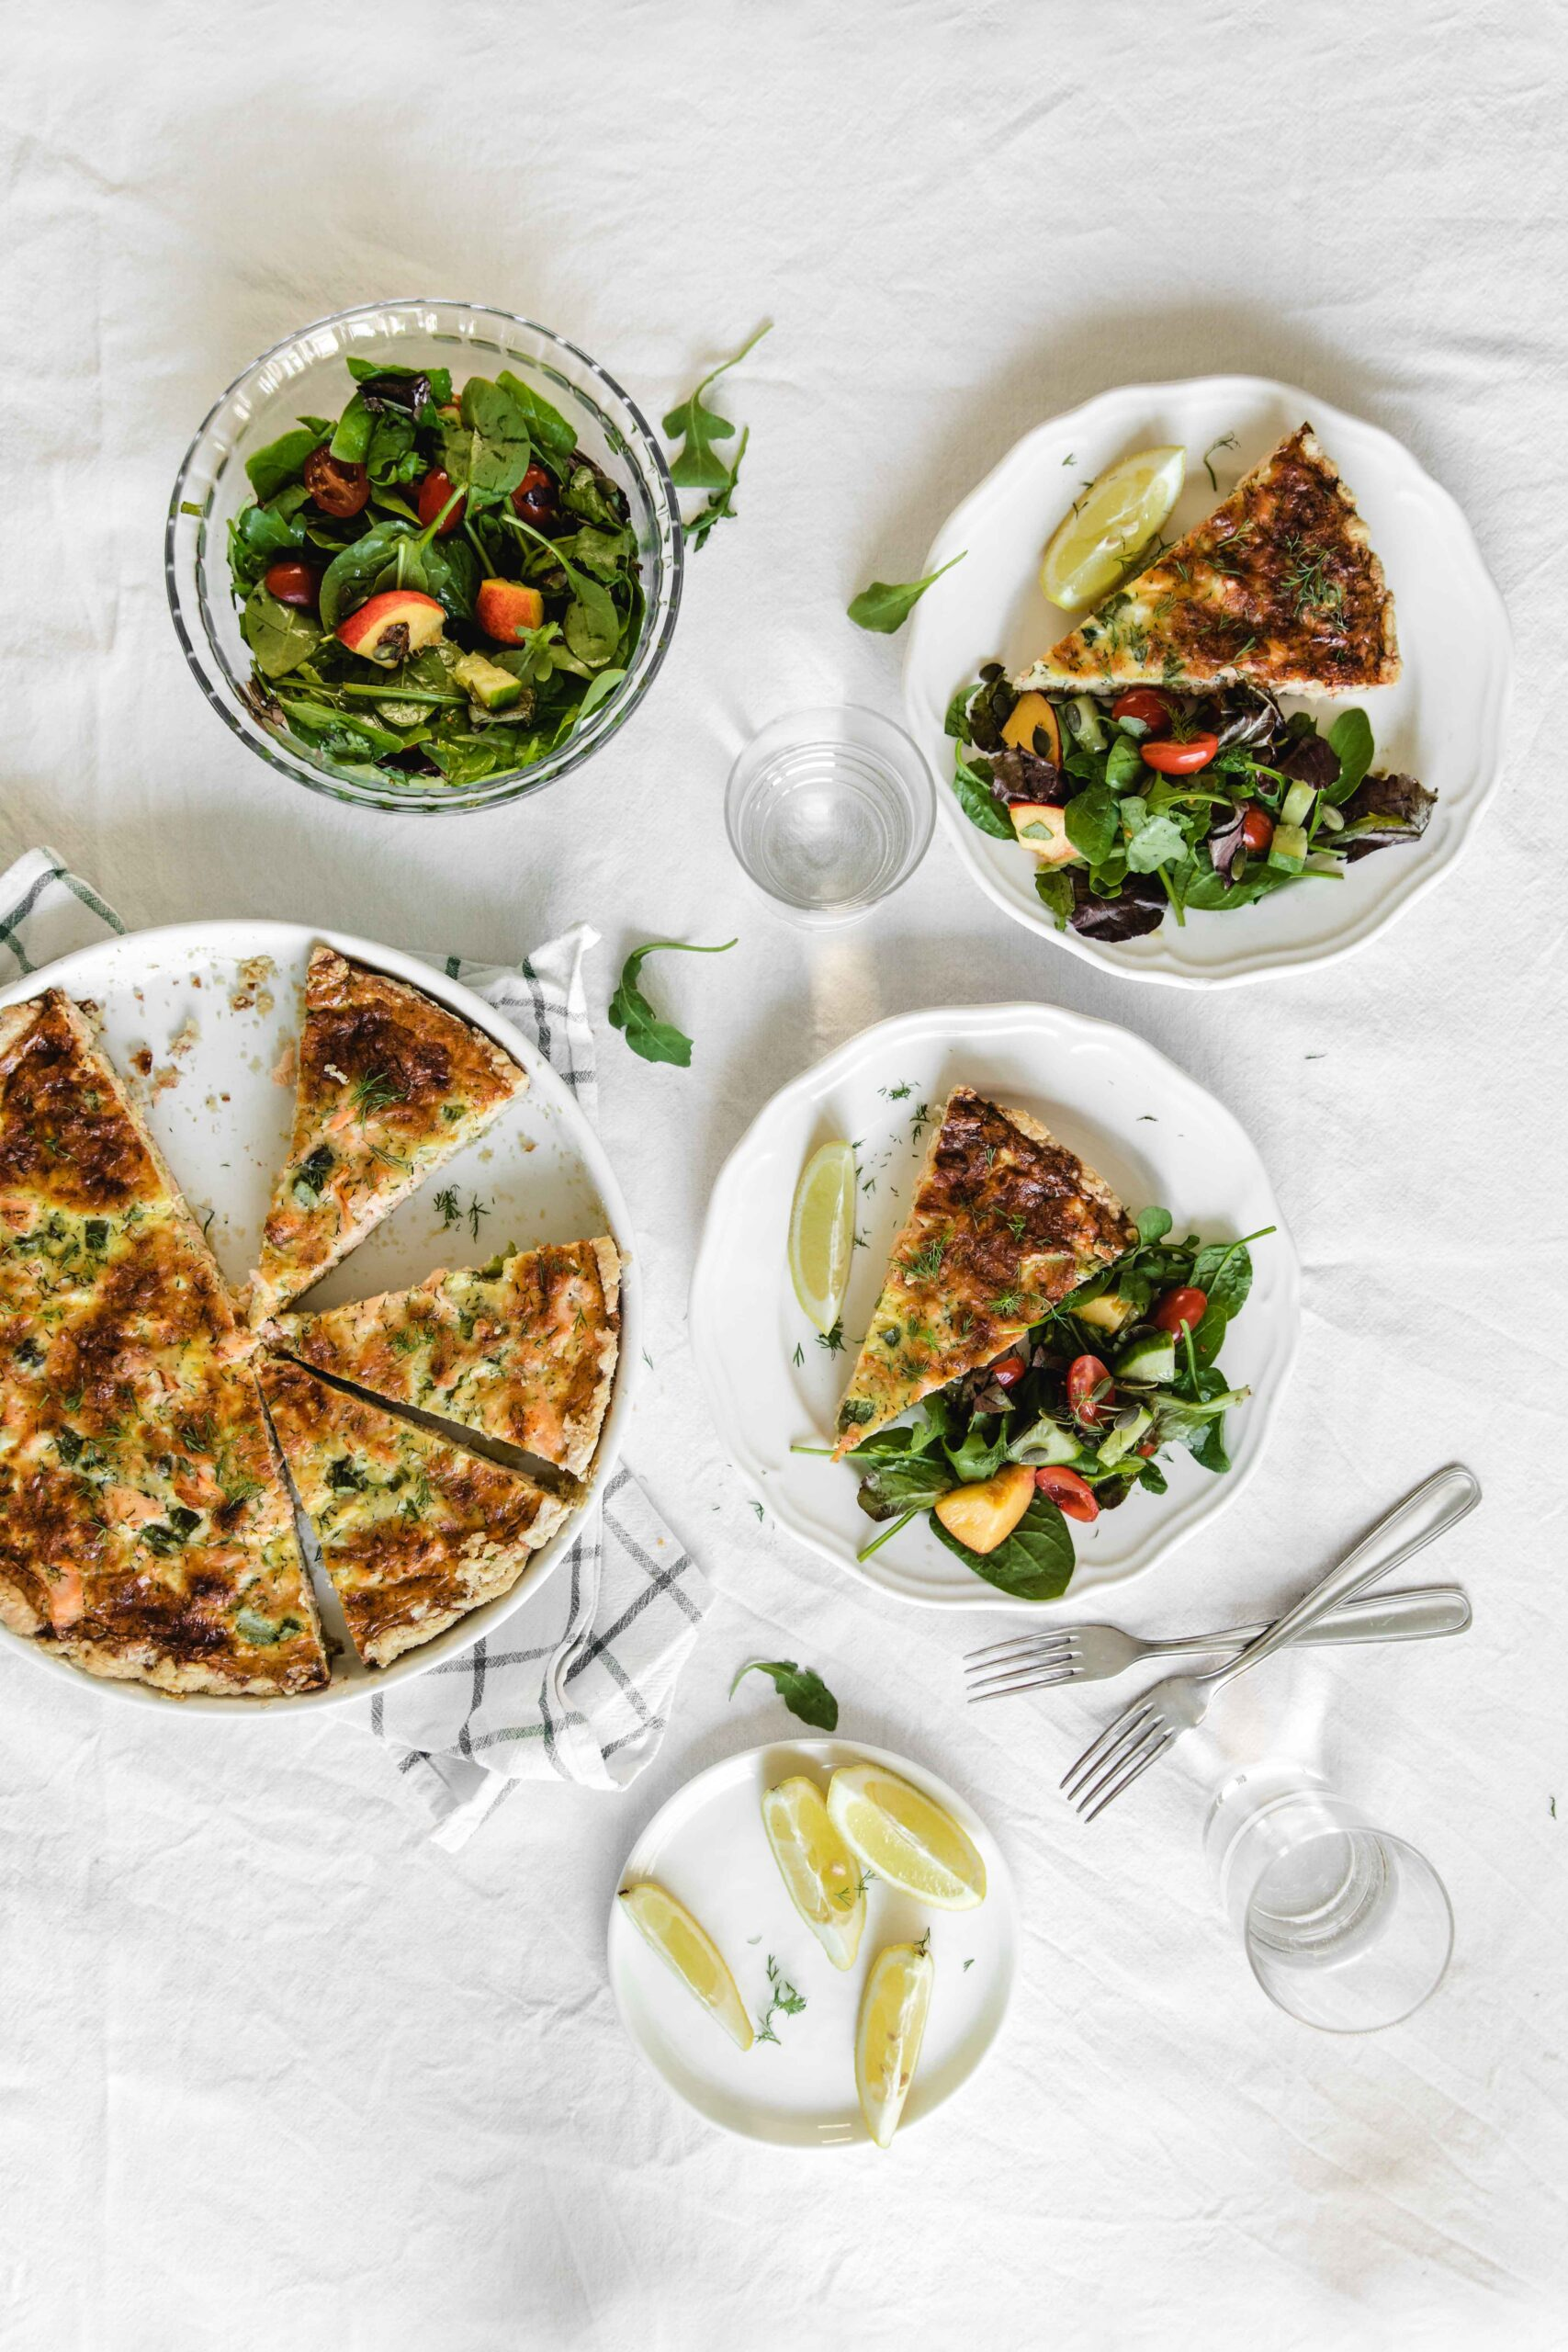 Salmon quiche with peach salad